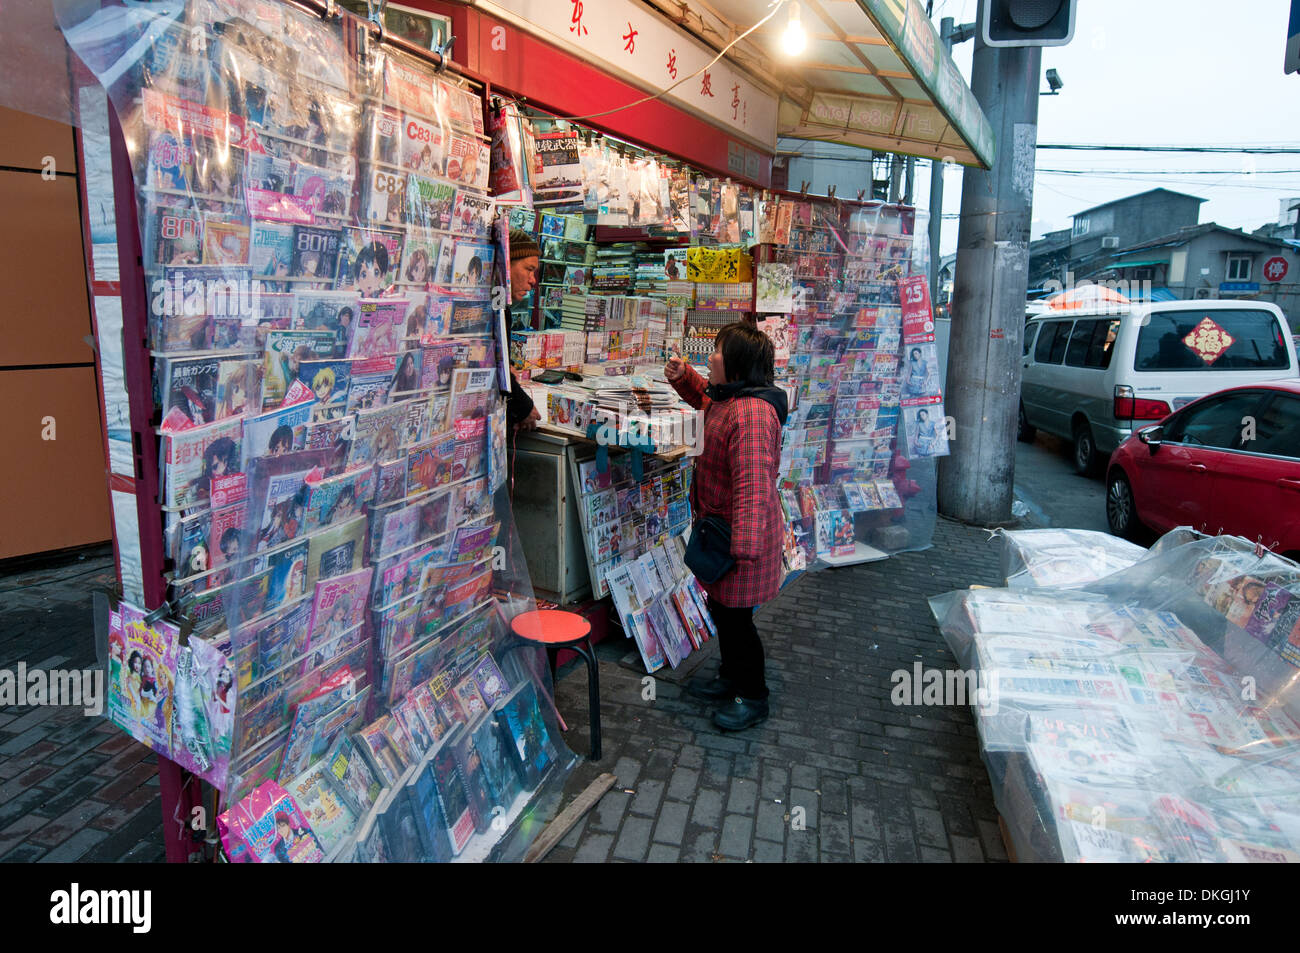 newsstand in Old City of Shanghai, China Stock Photo